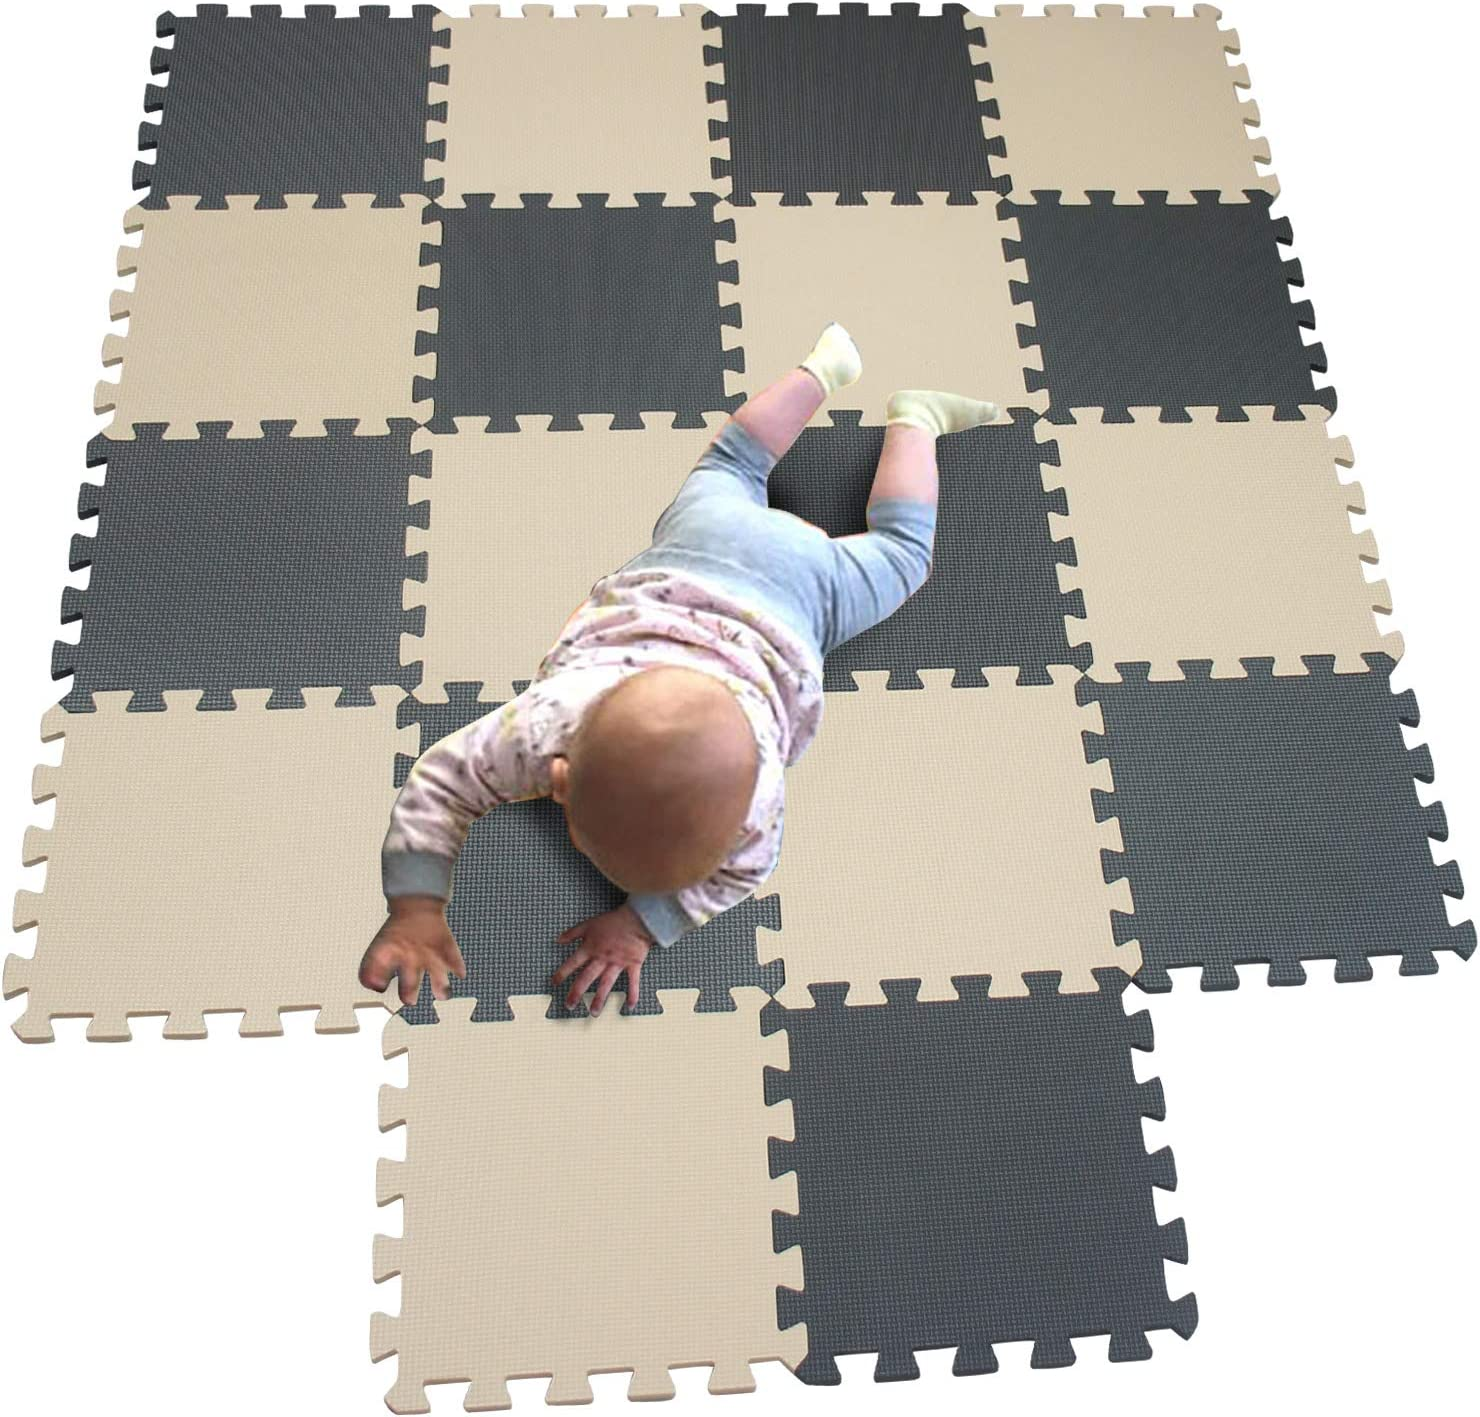 MQIAOHAM Children NEW Puzzle mat Squares Play Bab Max 76% OFF Tiles